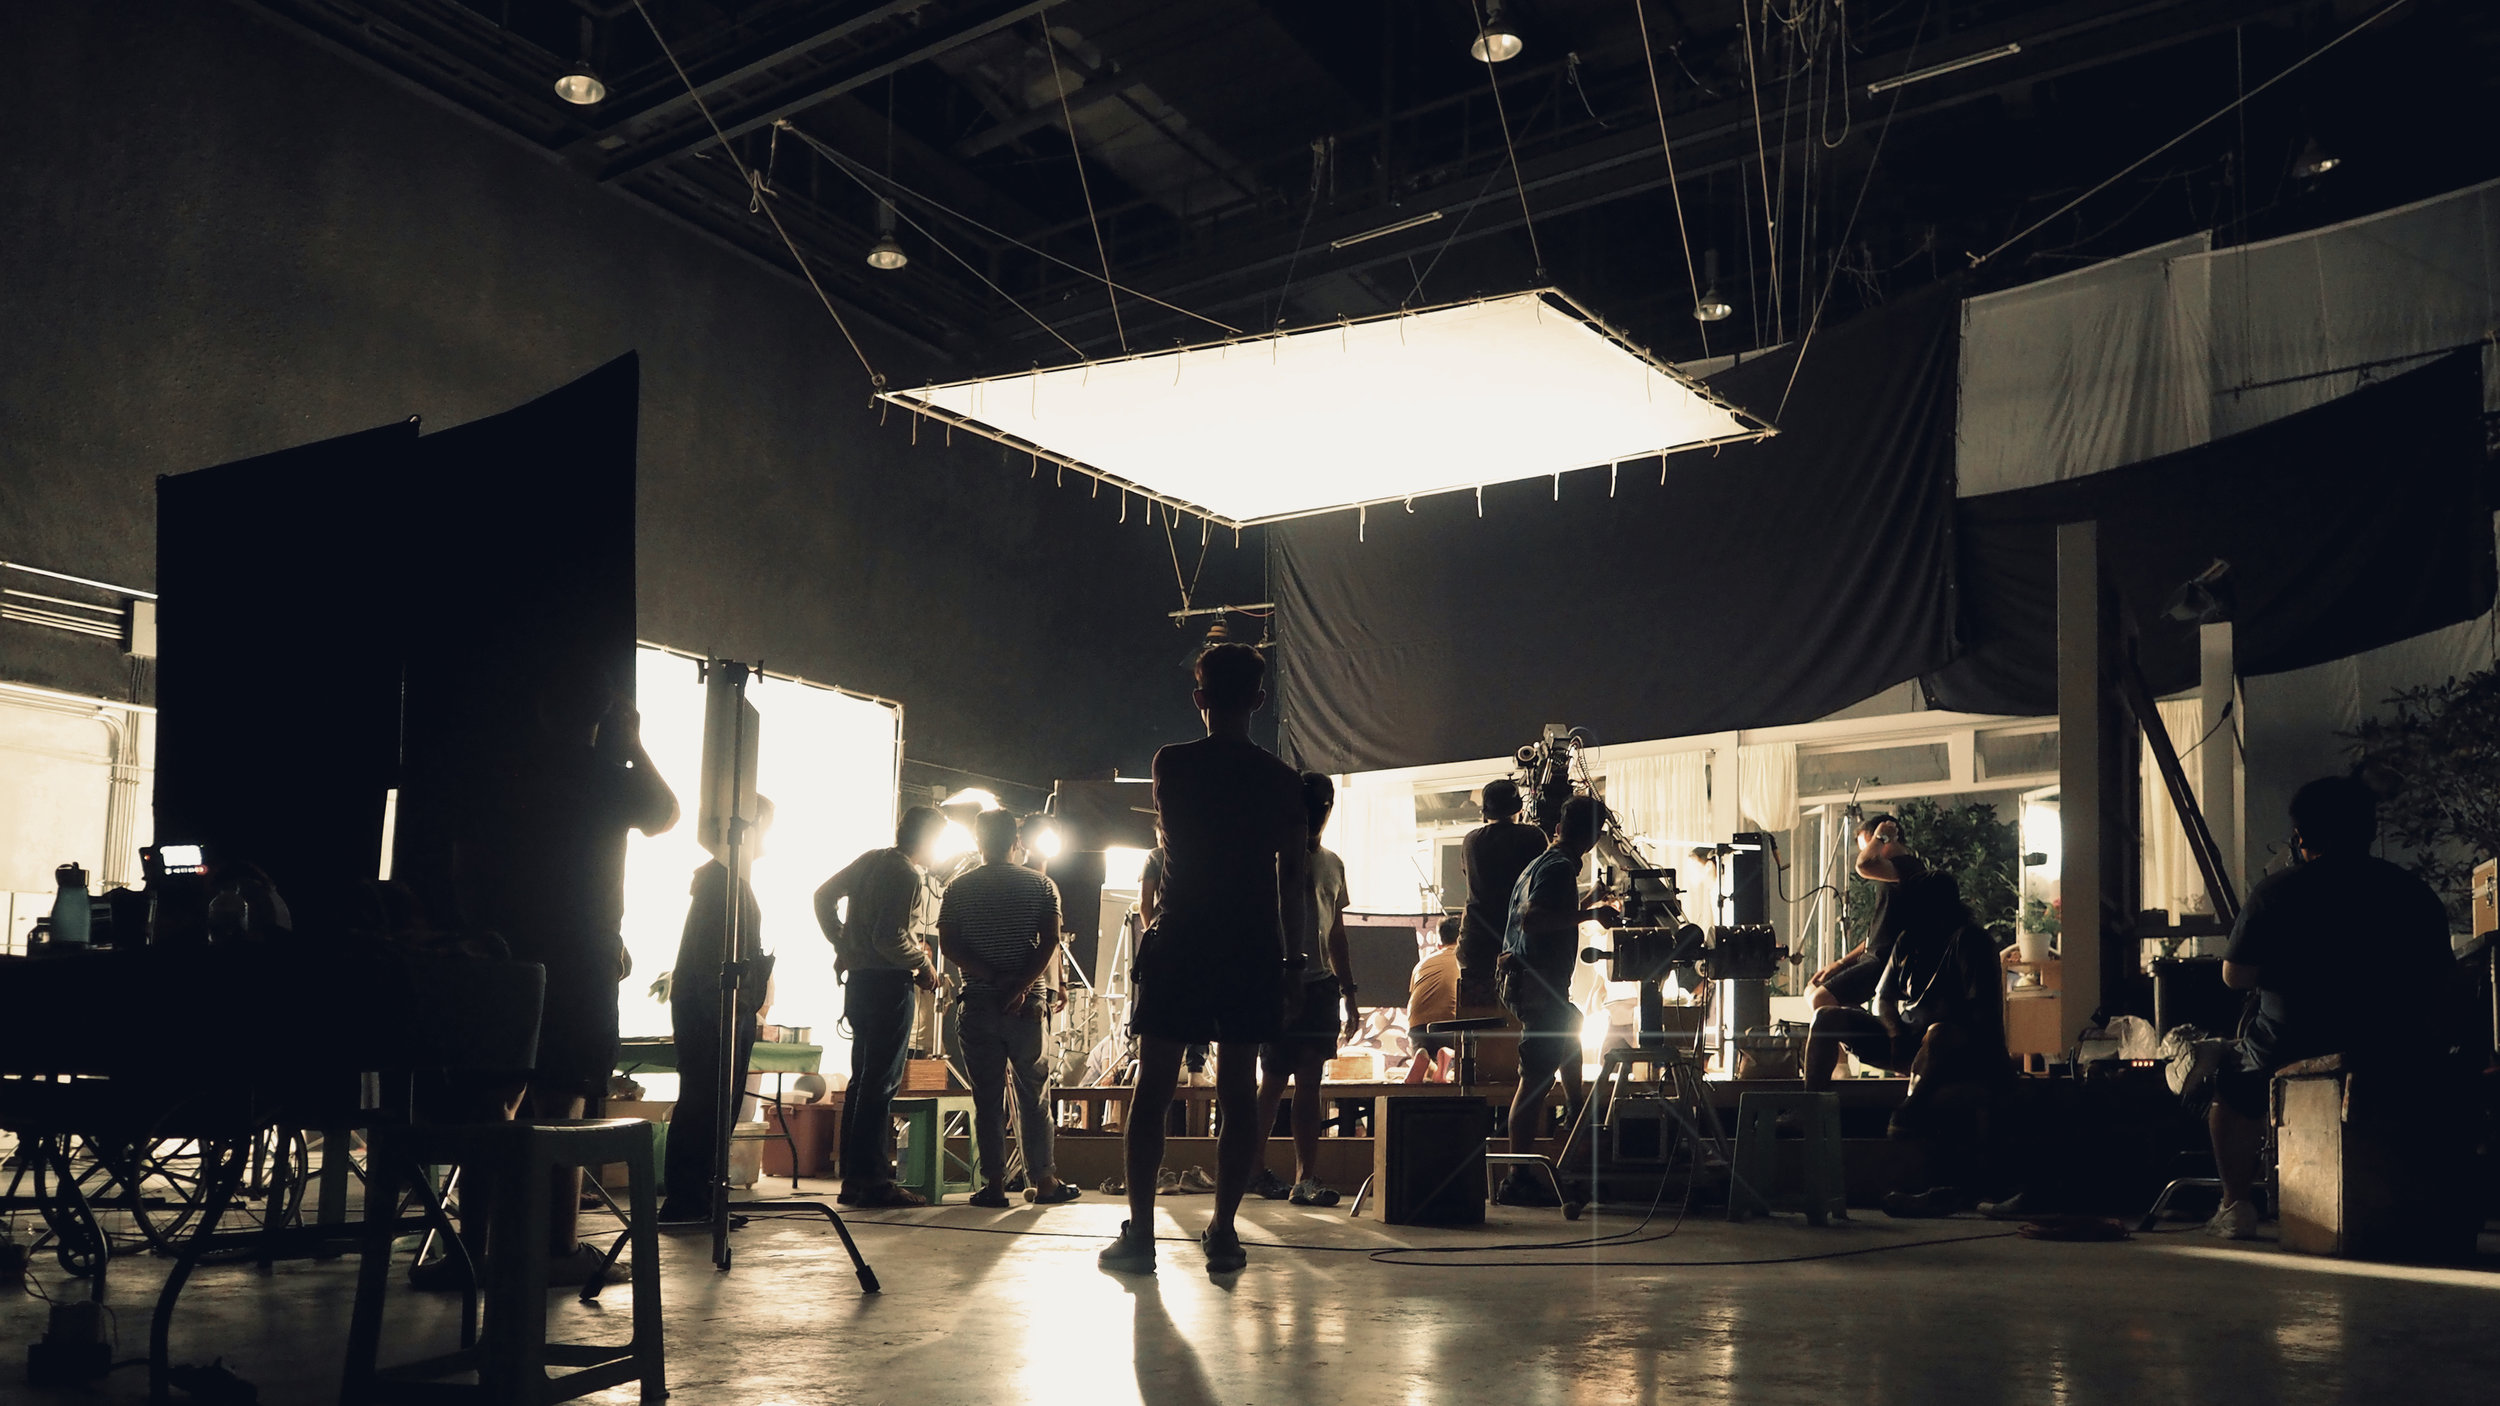 Silhouette of people working in big production studio